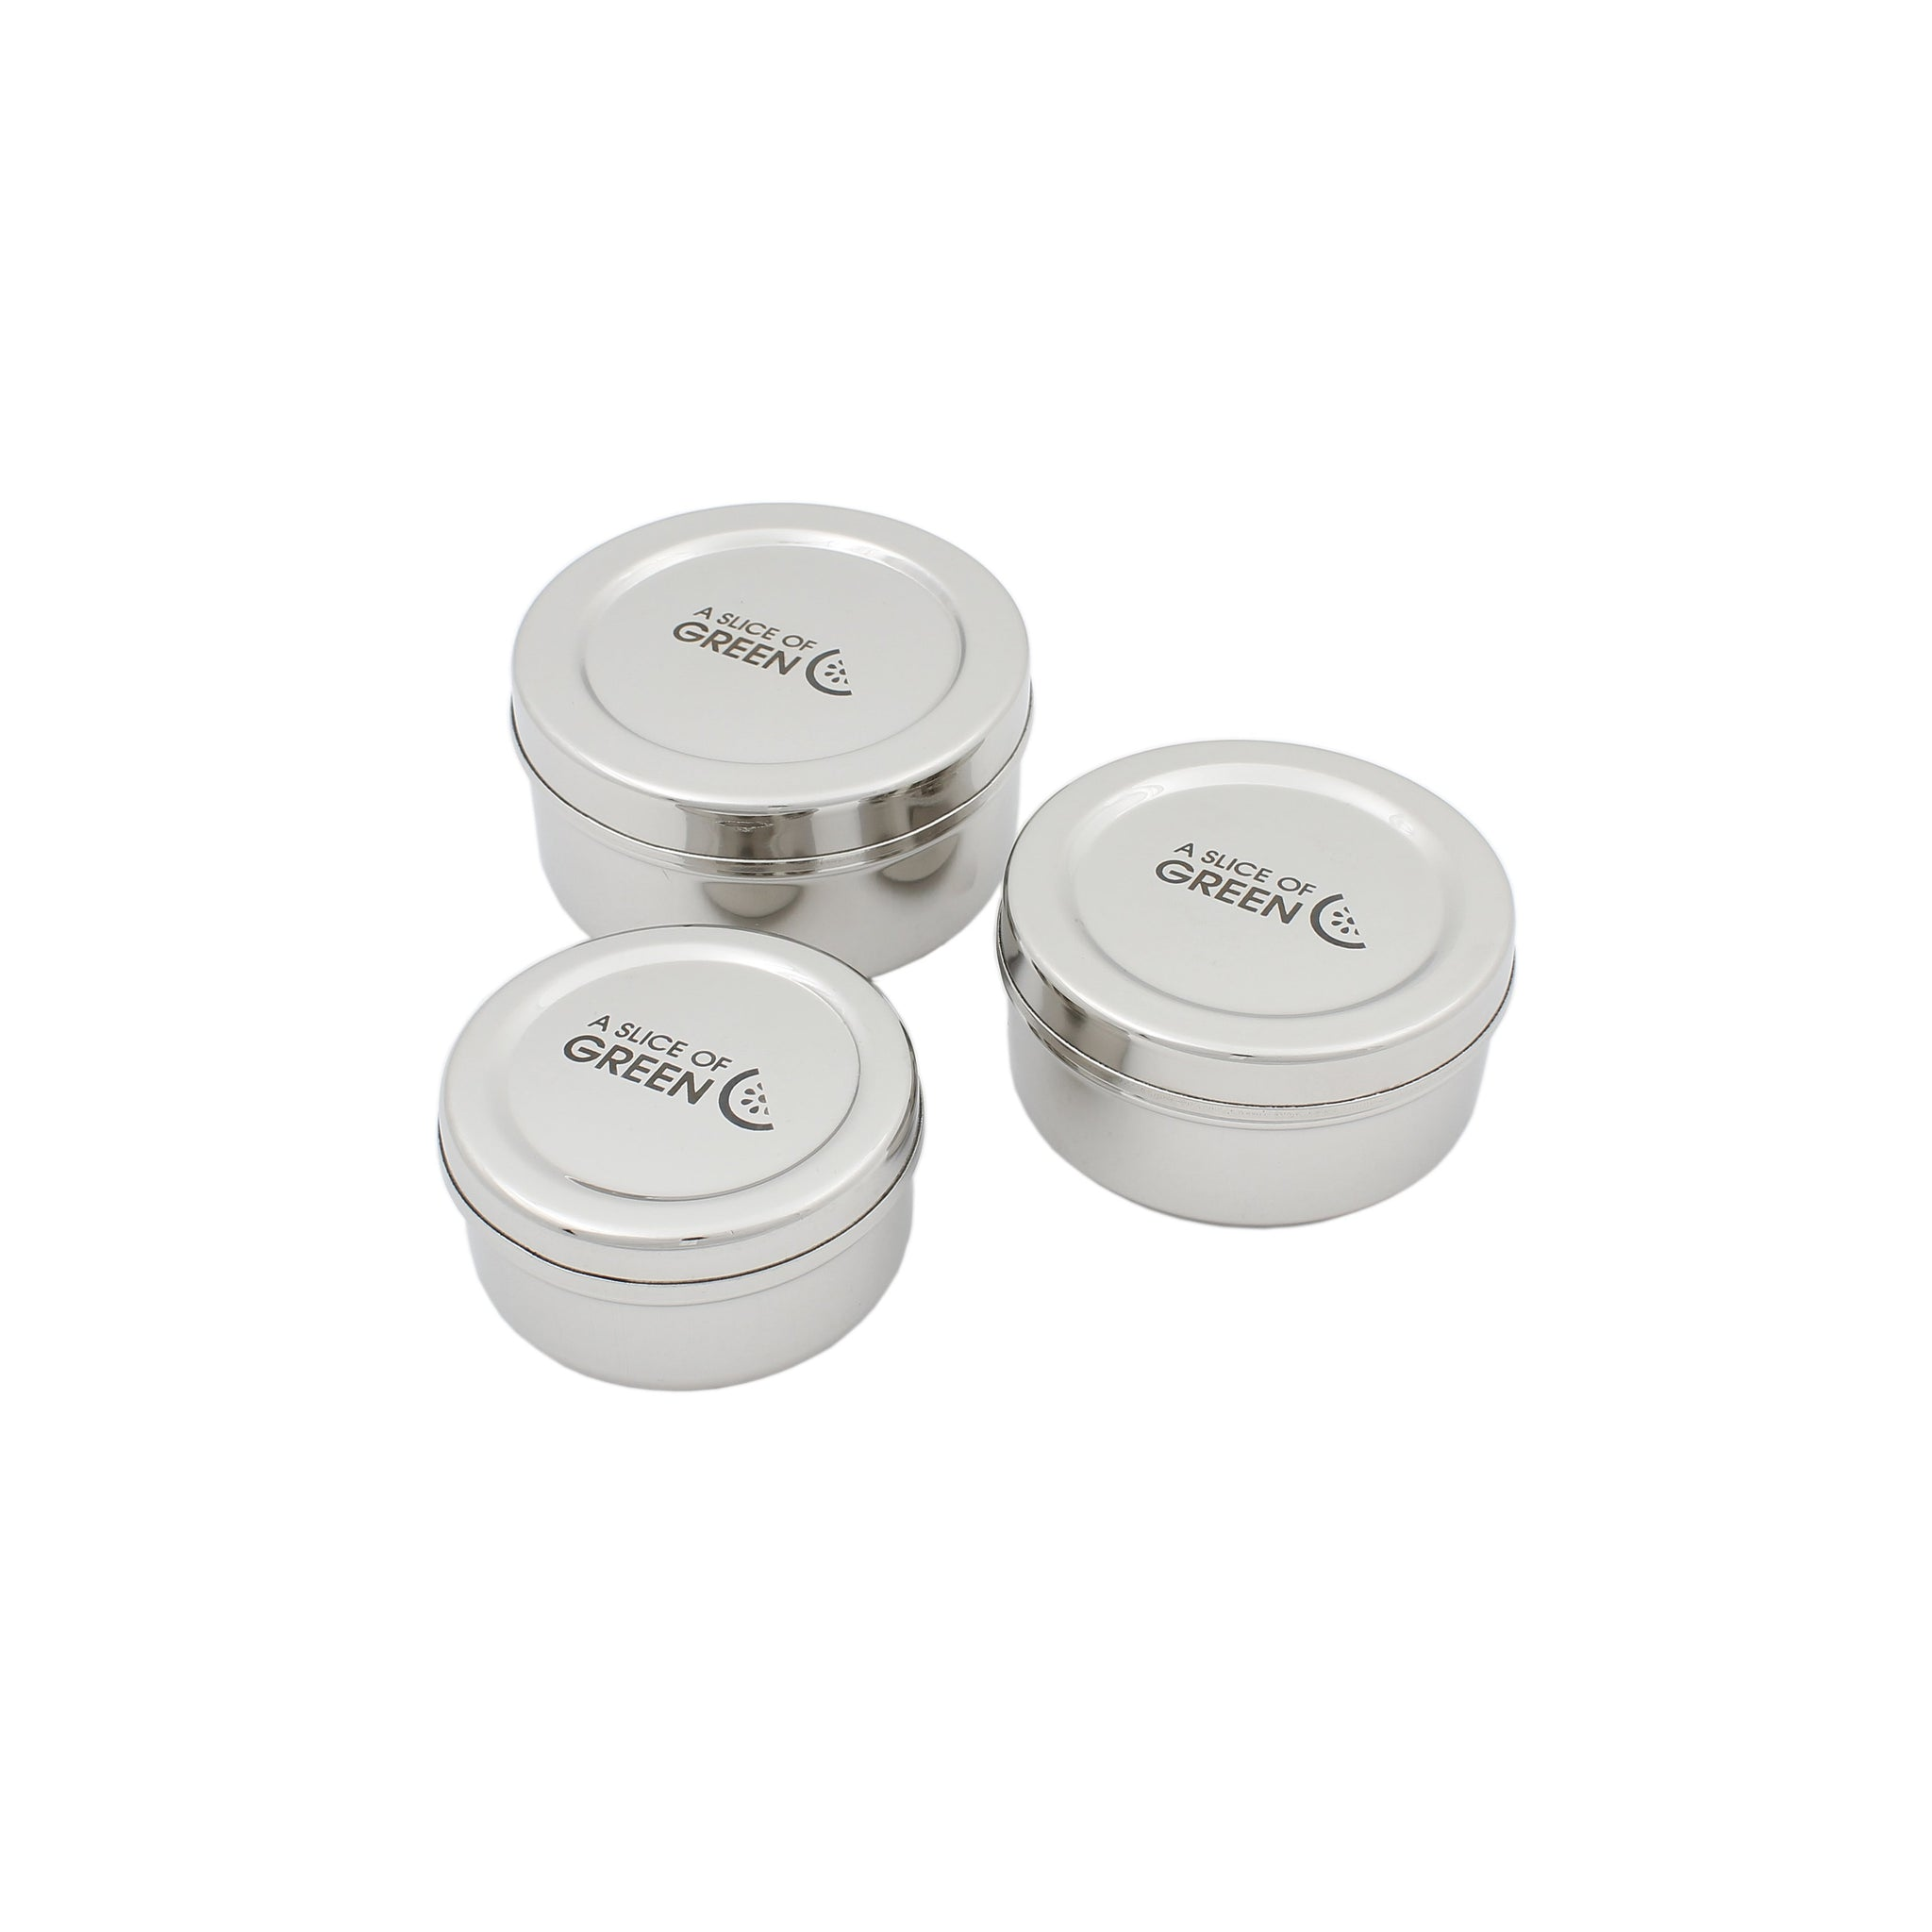 Set of Three Stainless Steel Storage Containers - Smallkind